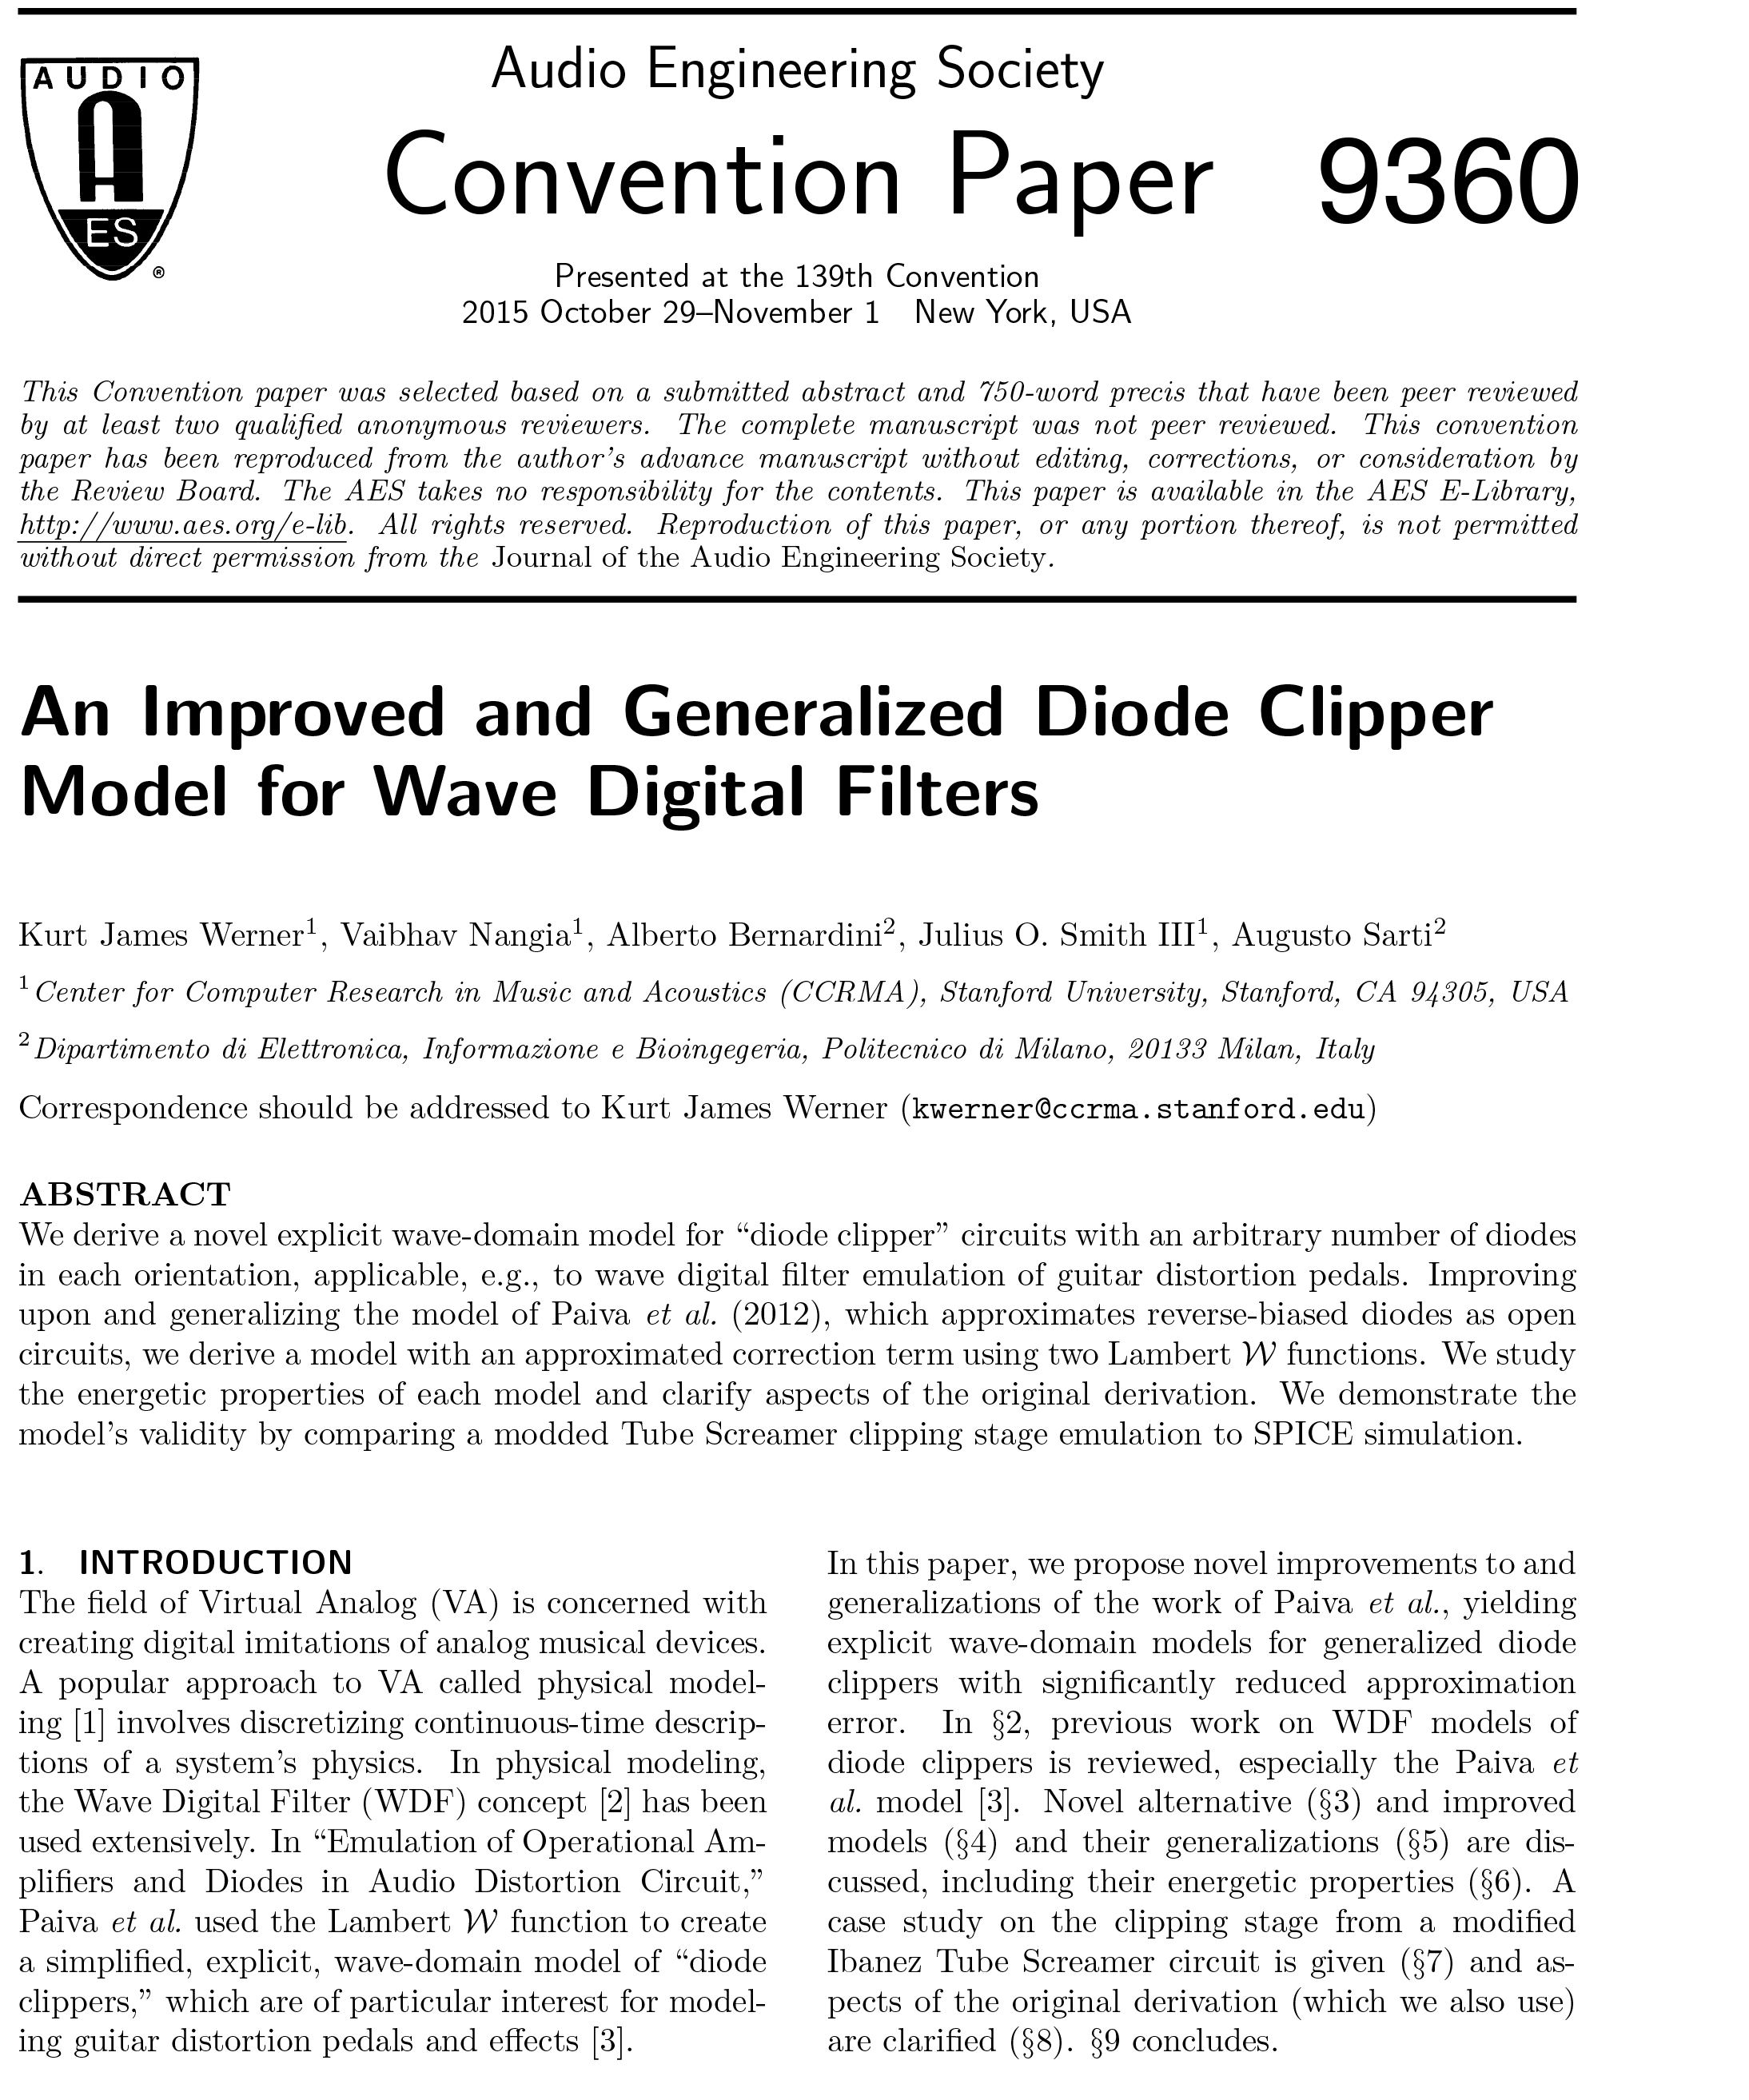 AES E-Library » An Improved and Generalized Diode Clipper Model for